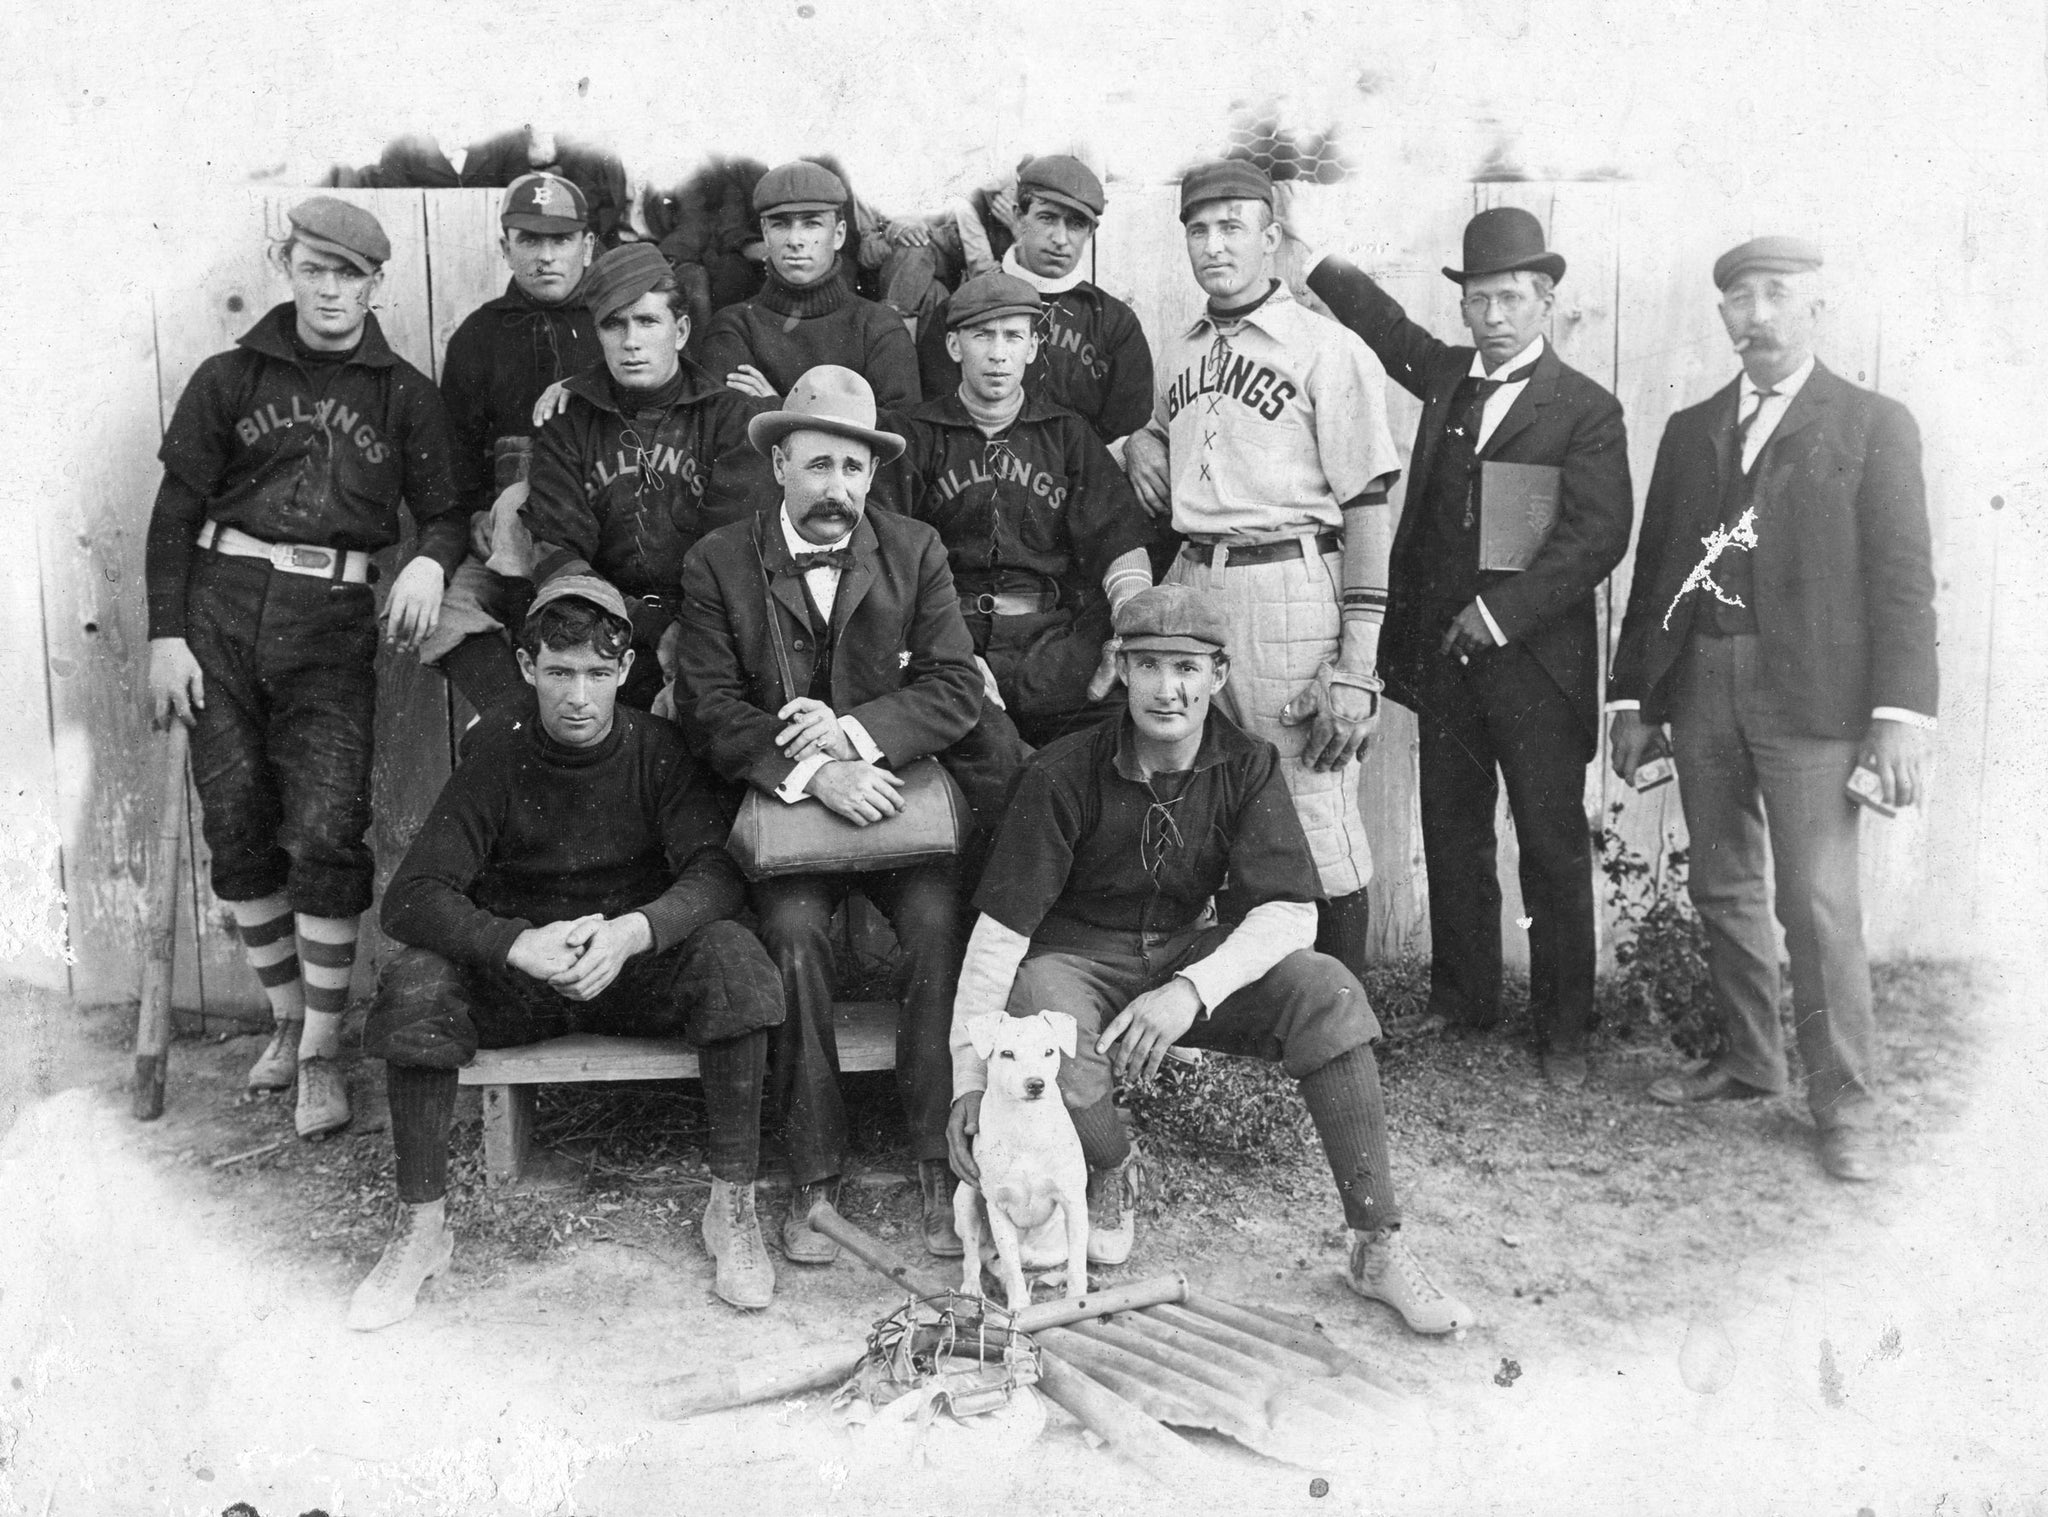 Billings baseball team, circa 1900. -- Courtesy Western Heritage Center